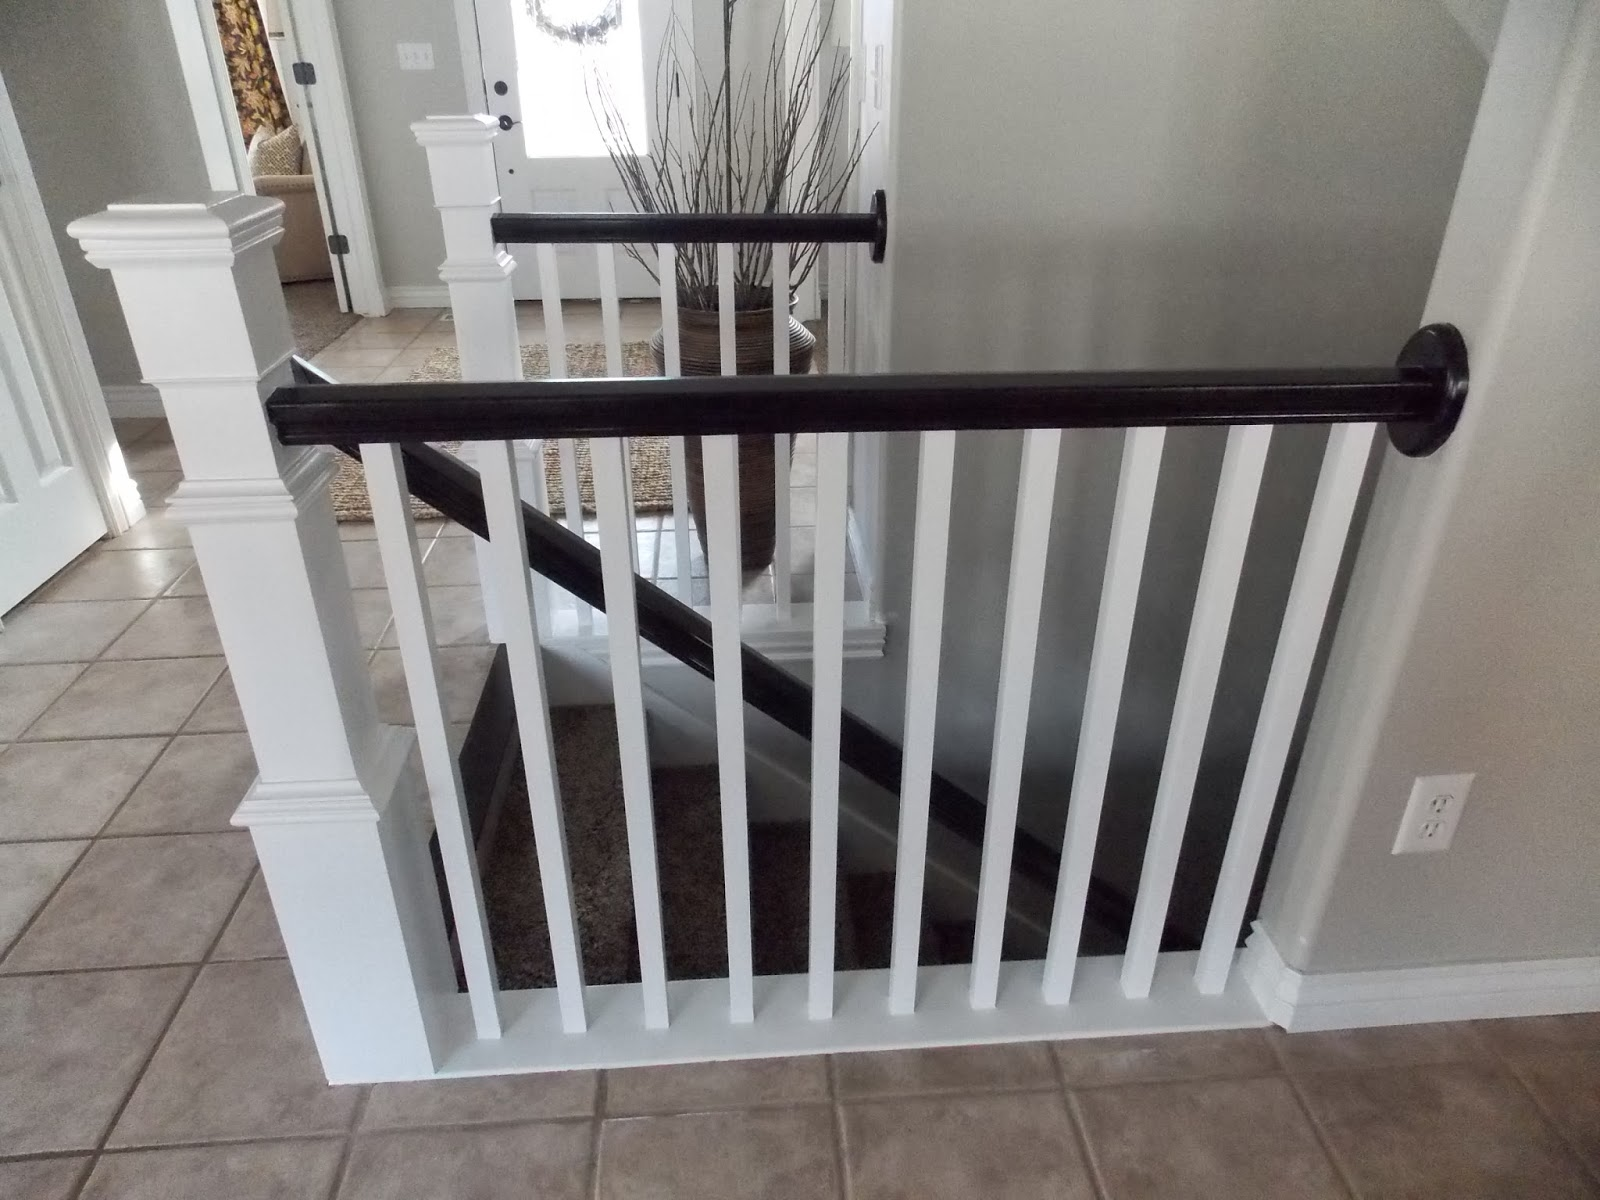 Wonderful Stair Banister Redo With New Newel Post And Spindles   TDA Decorating And  Design Featured On